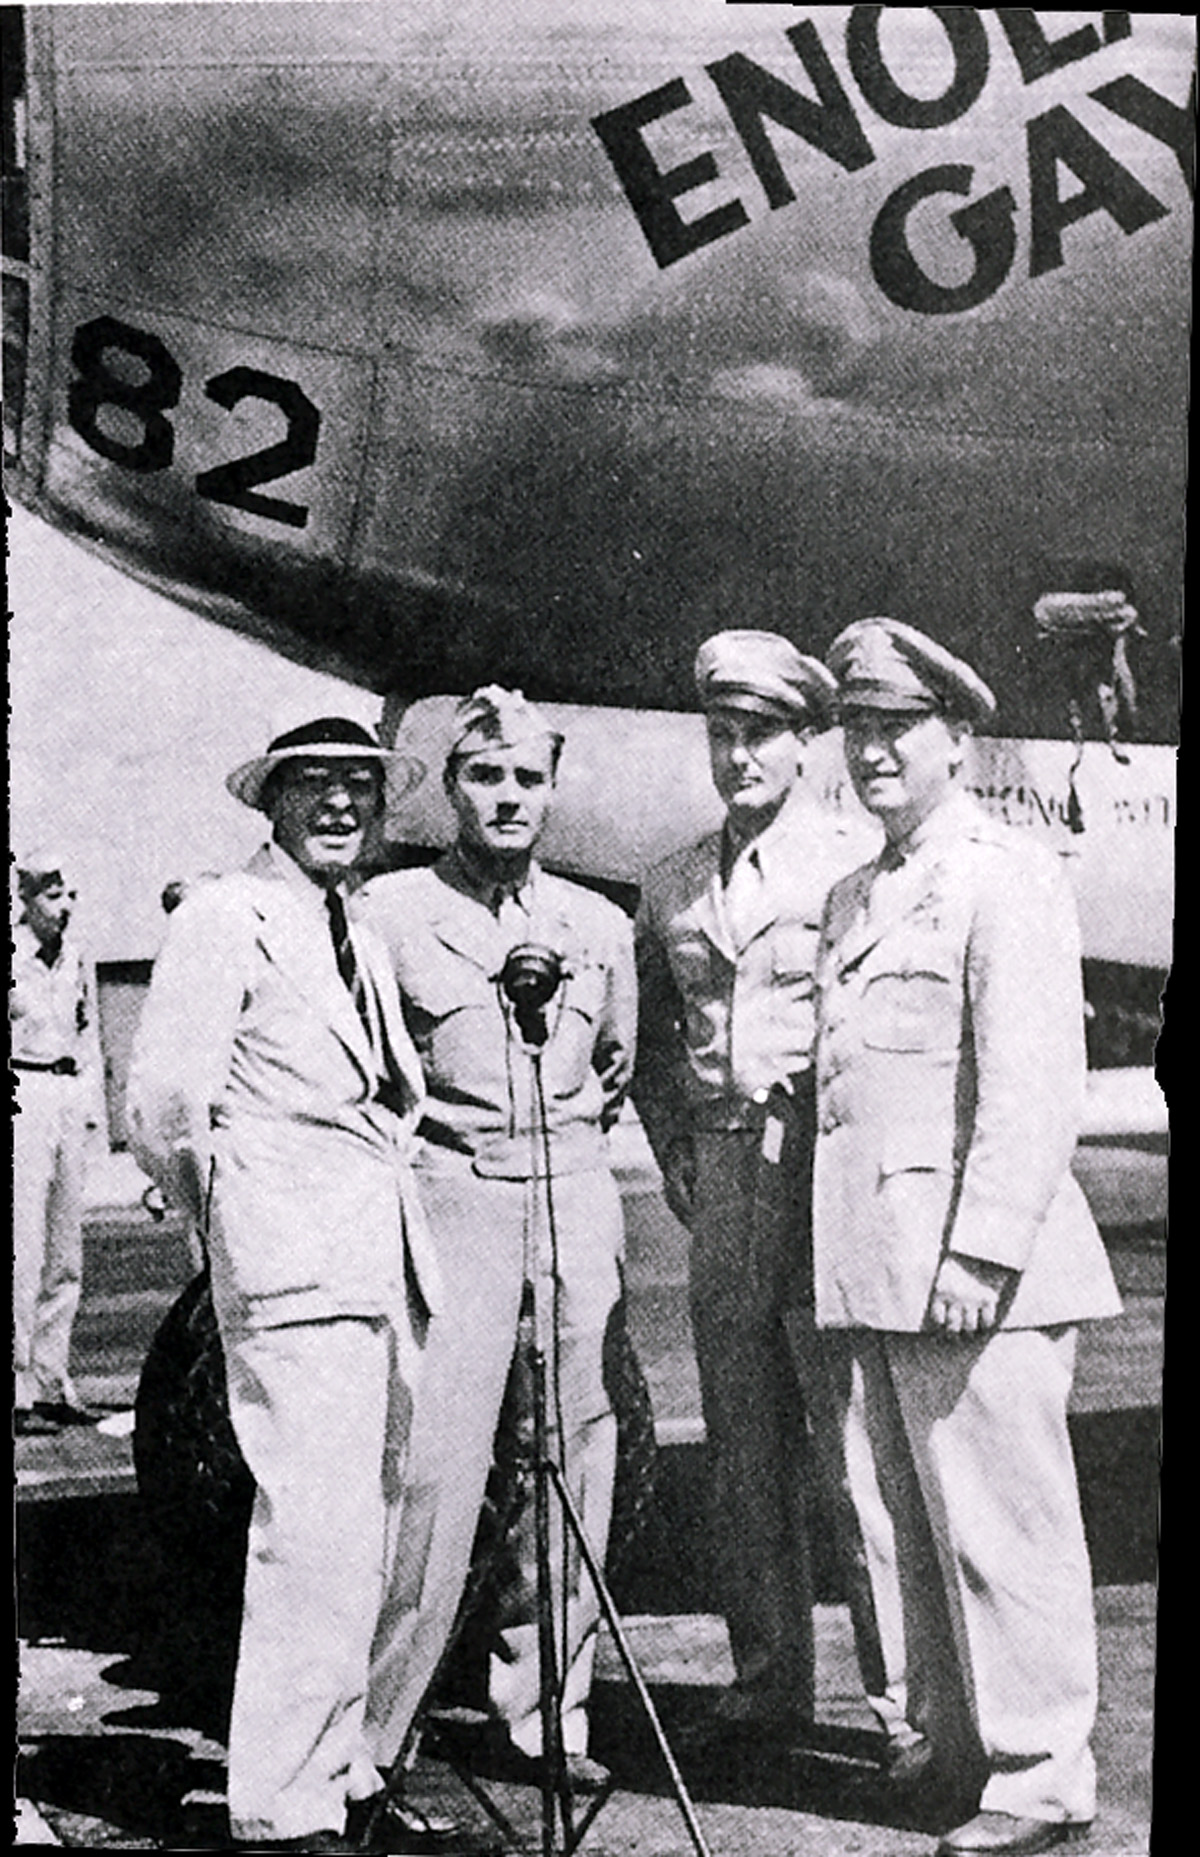 the enola gay controversy a historian's A round table about history after the enola gay controversy   is research the basis of the historian's expertise  what historical.